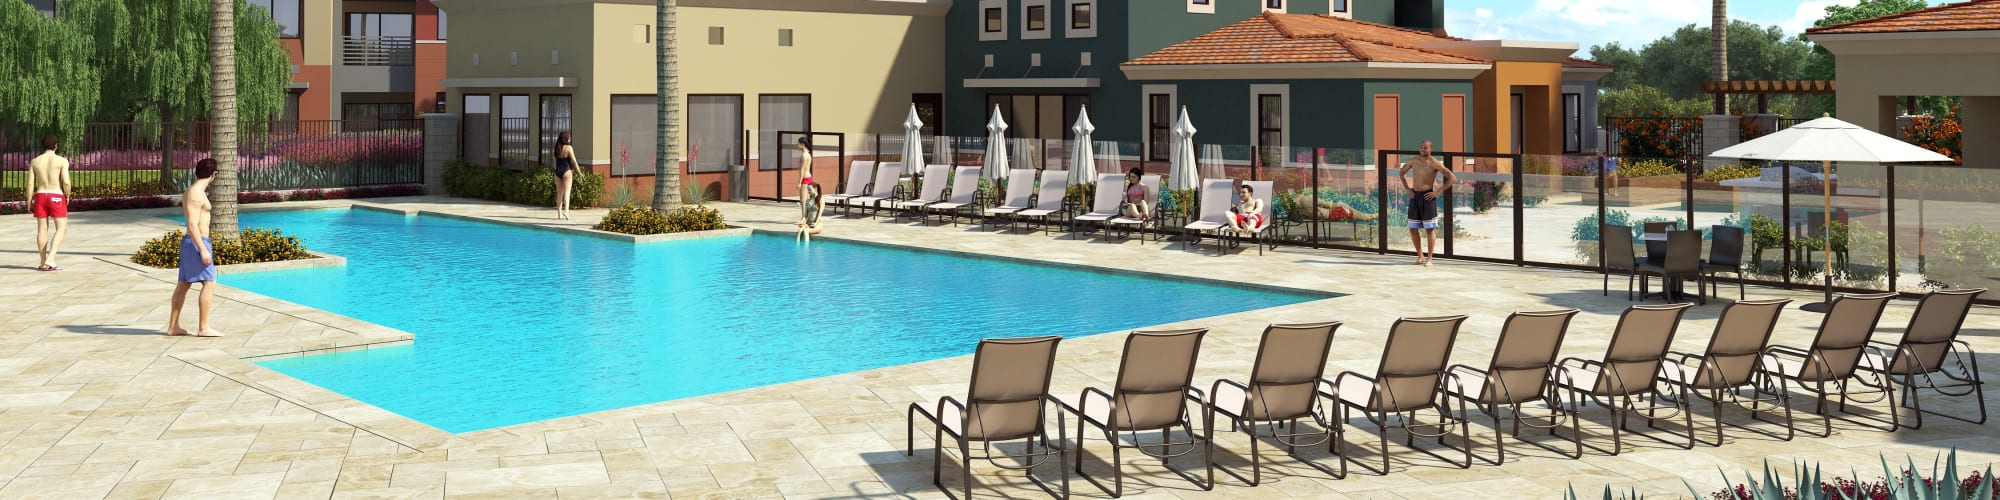 Amenities at Villa Vita Apartments in Peoria, Arizona